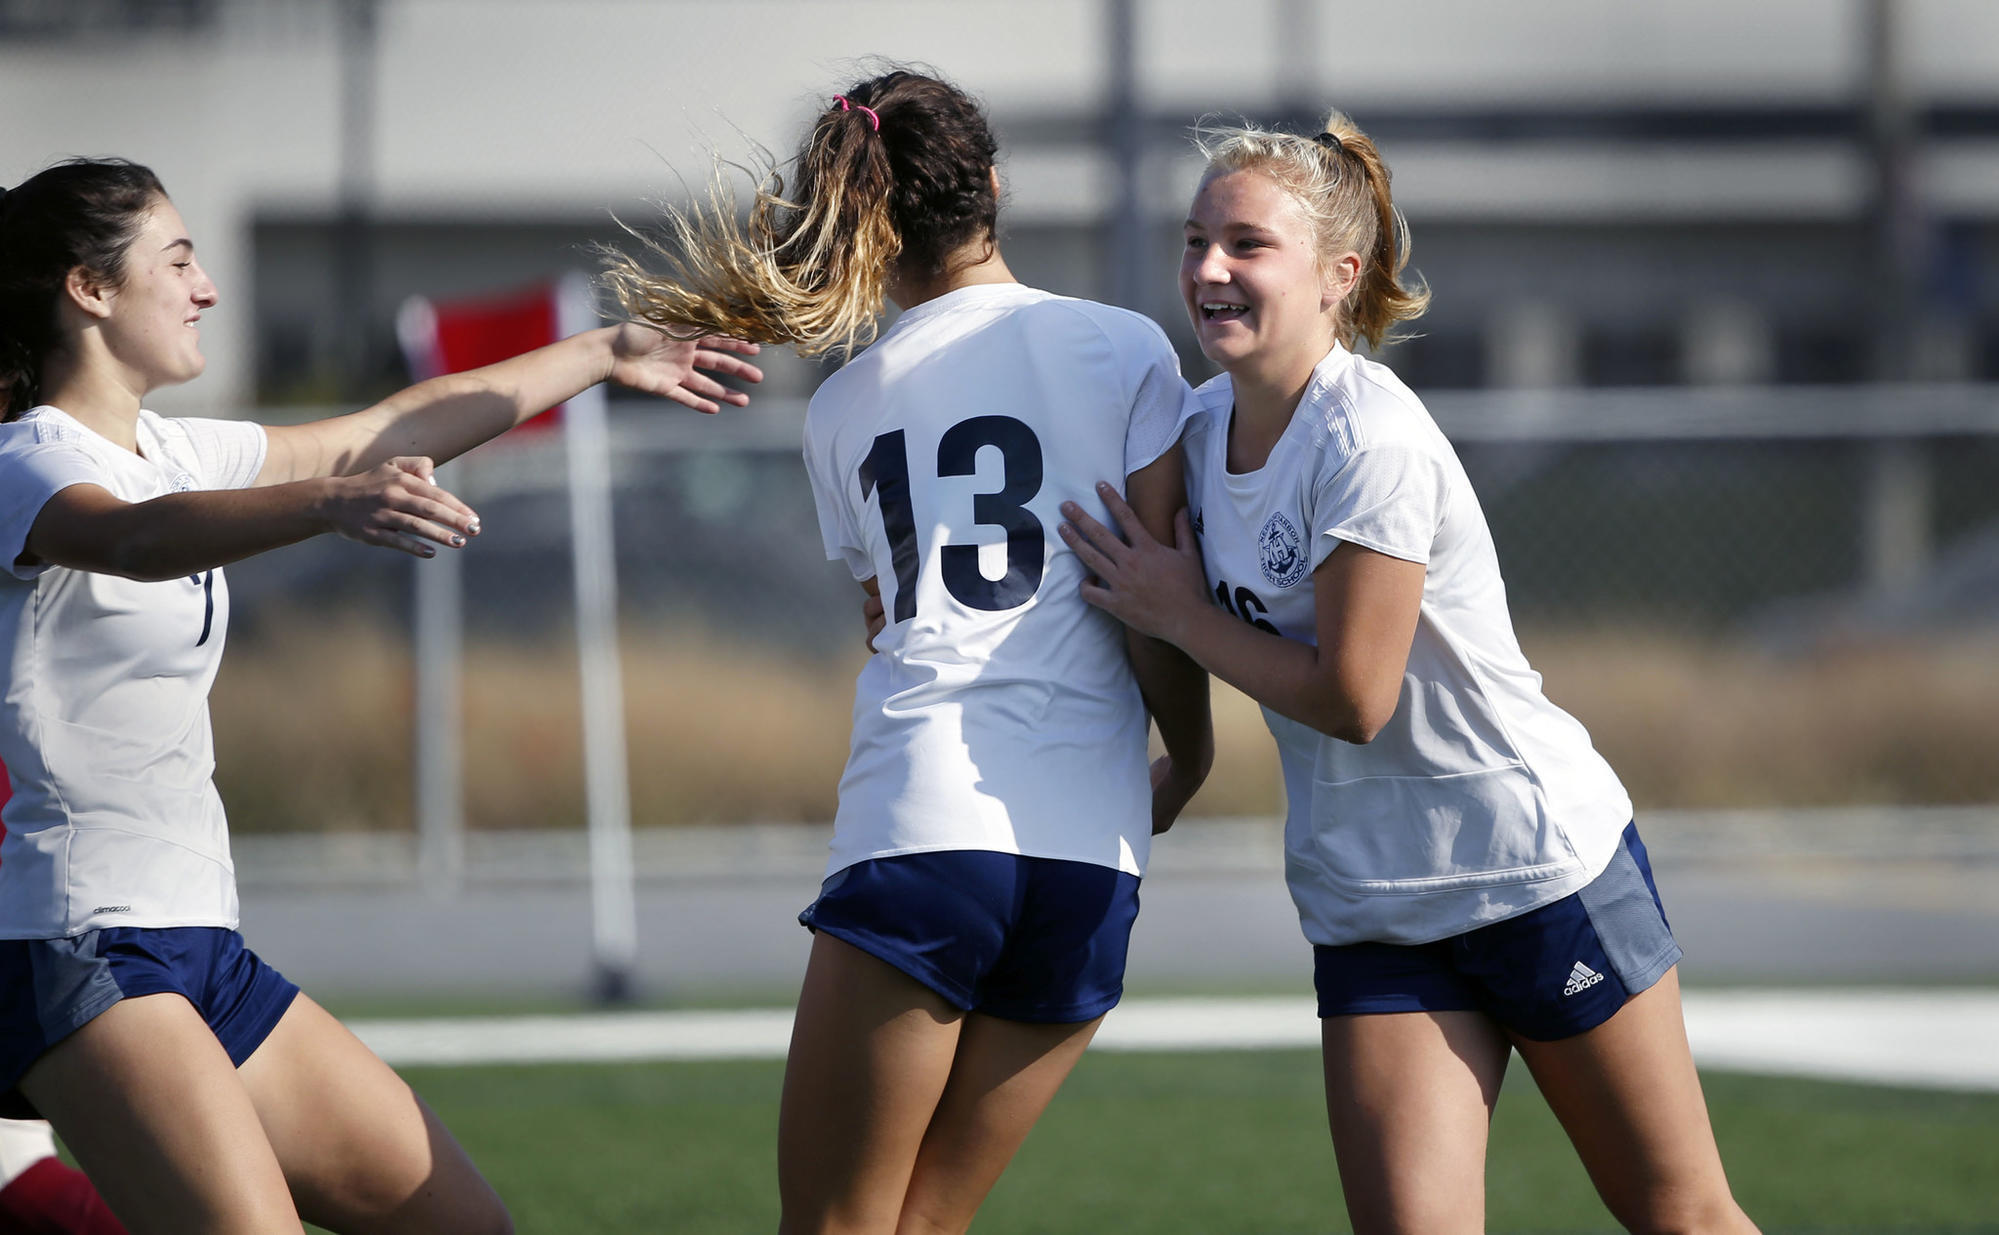 Newport Harbor strikes late to capture tournament title over Beckman